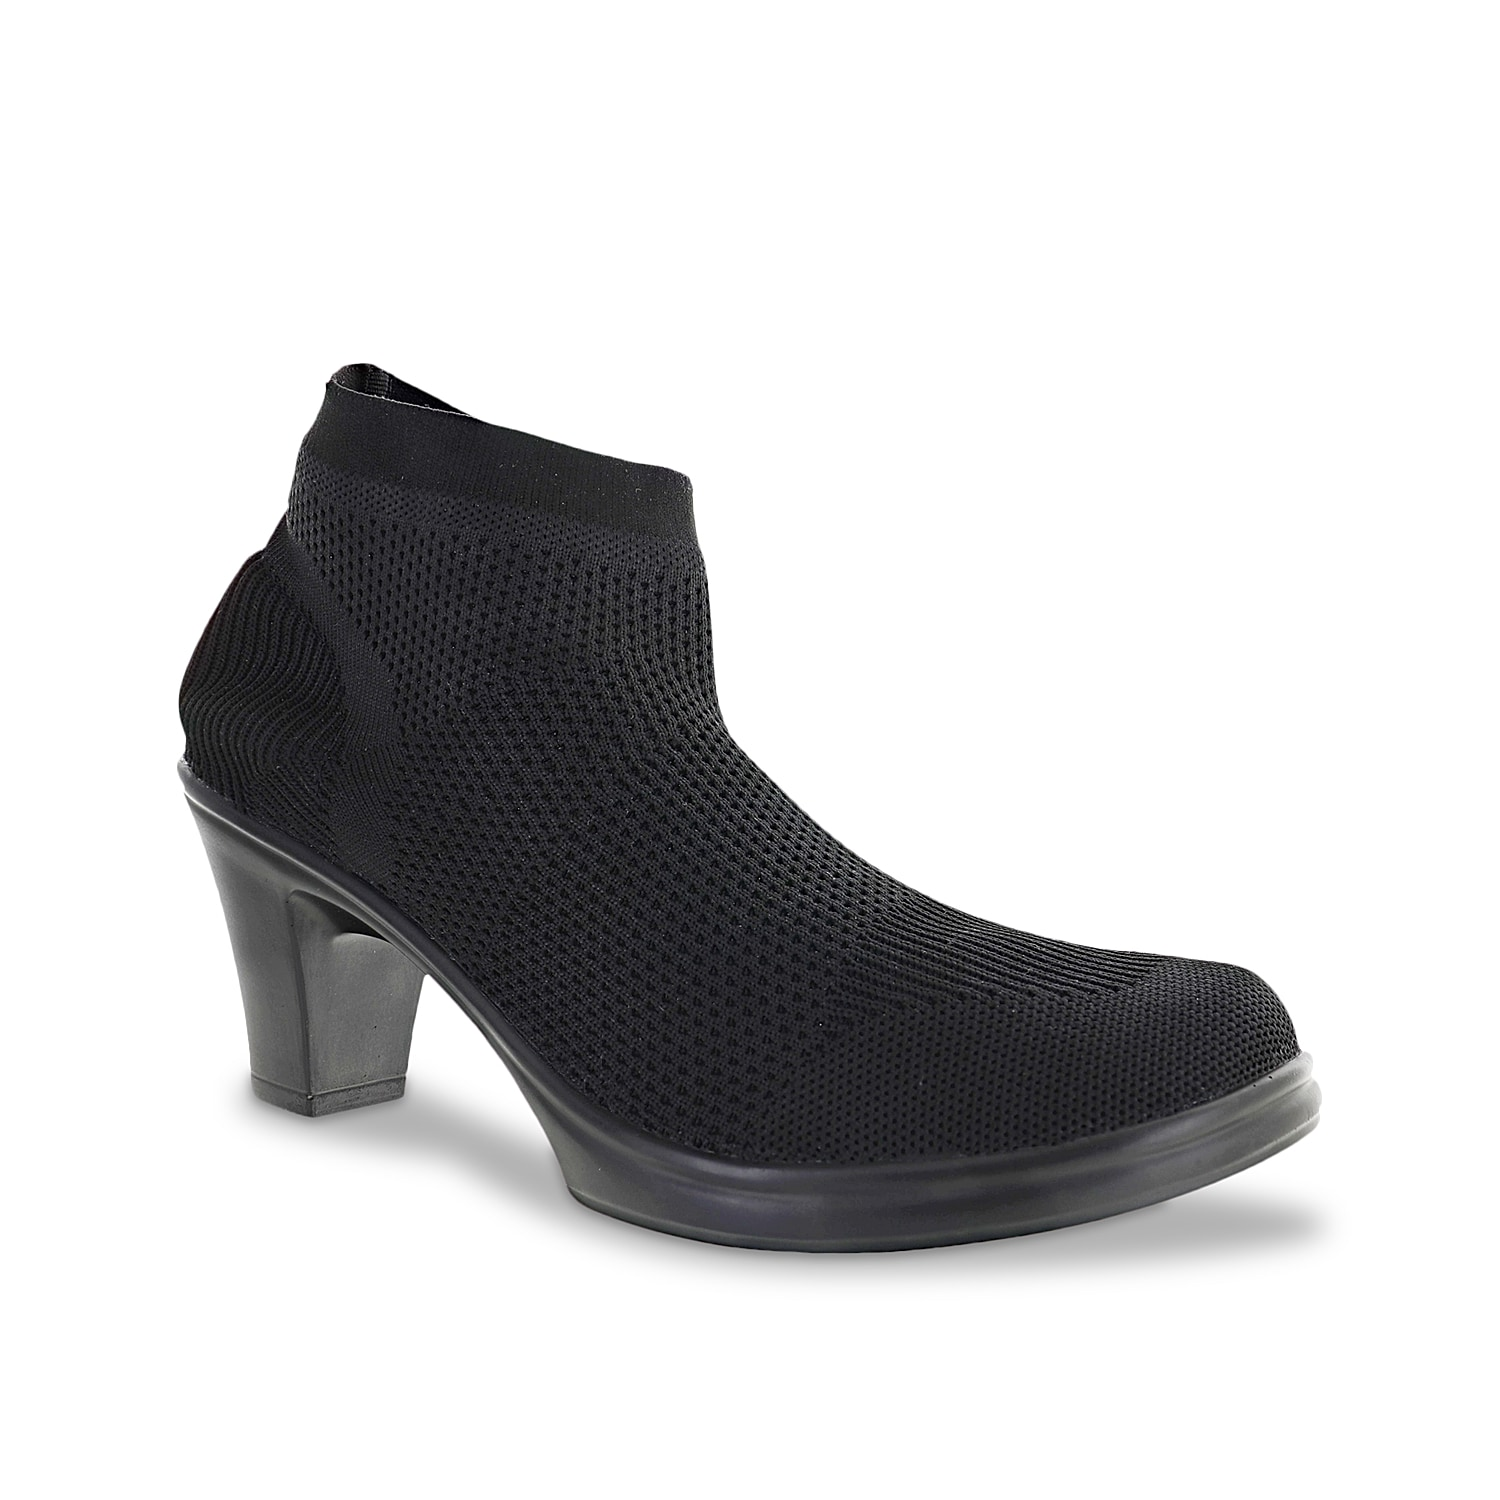 Hit the town in style in the Bernie Mev Doll bootie. The fitted sock bootie construction is equipped with stretch knit technology at the upper and memory foam insole for maximum comfort. Click here for Boot Measuring Guide.